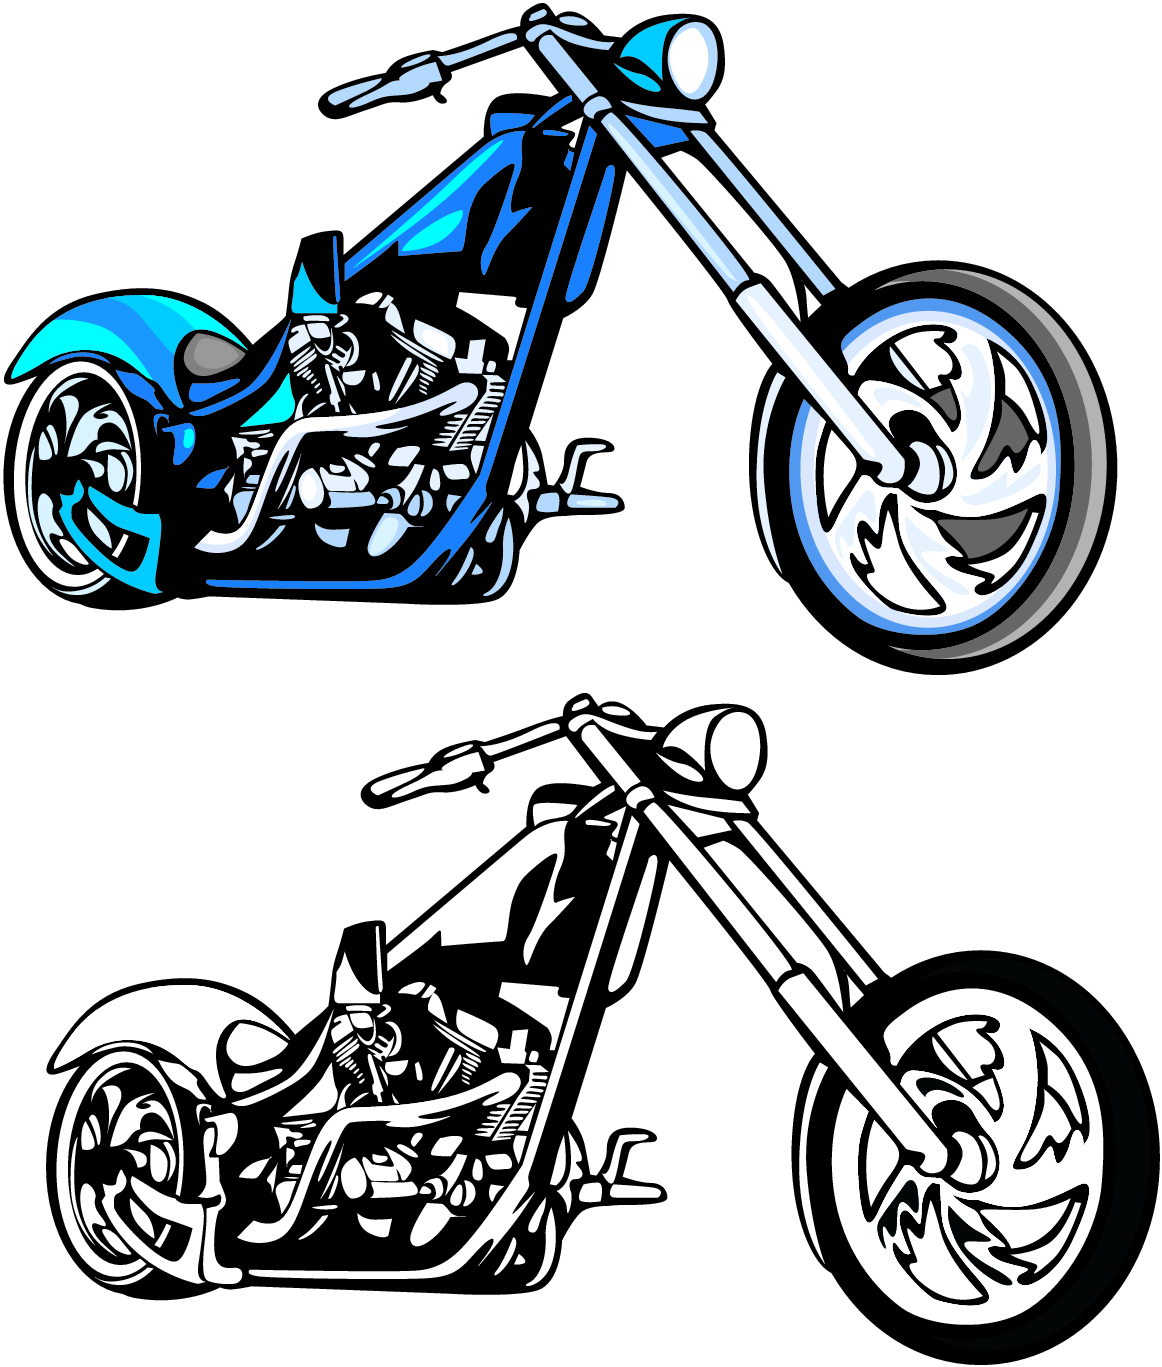 Motorcycle clipart simple. Four wheeler at getdrawings